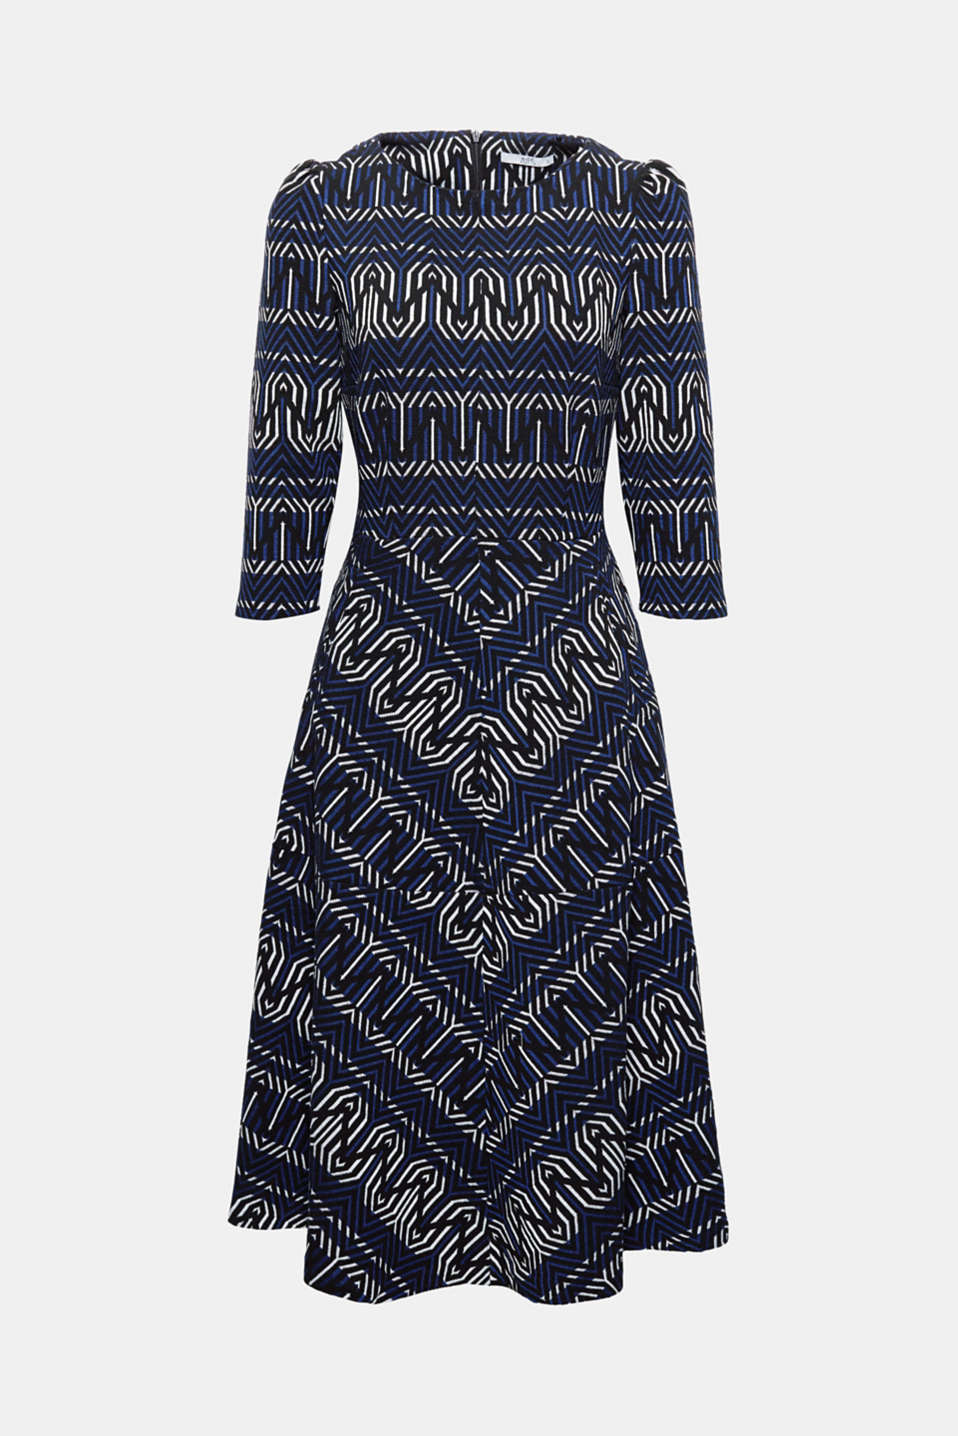 Fashion piece: this dress in a contemporary midi-length is an eye-catcher with its graphic jacquard pattern!